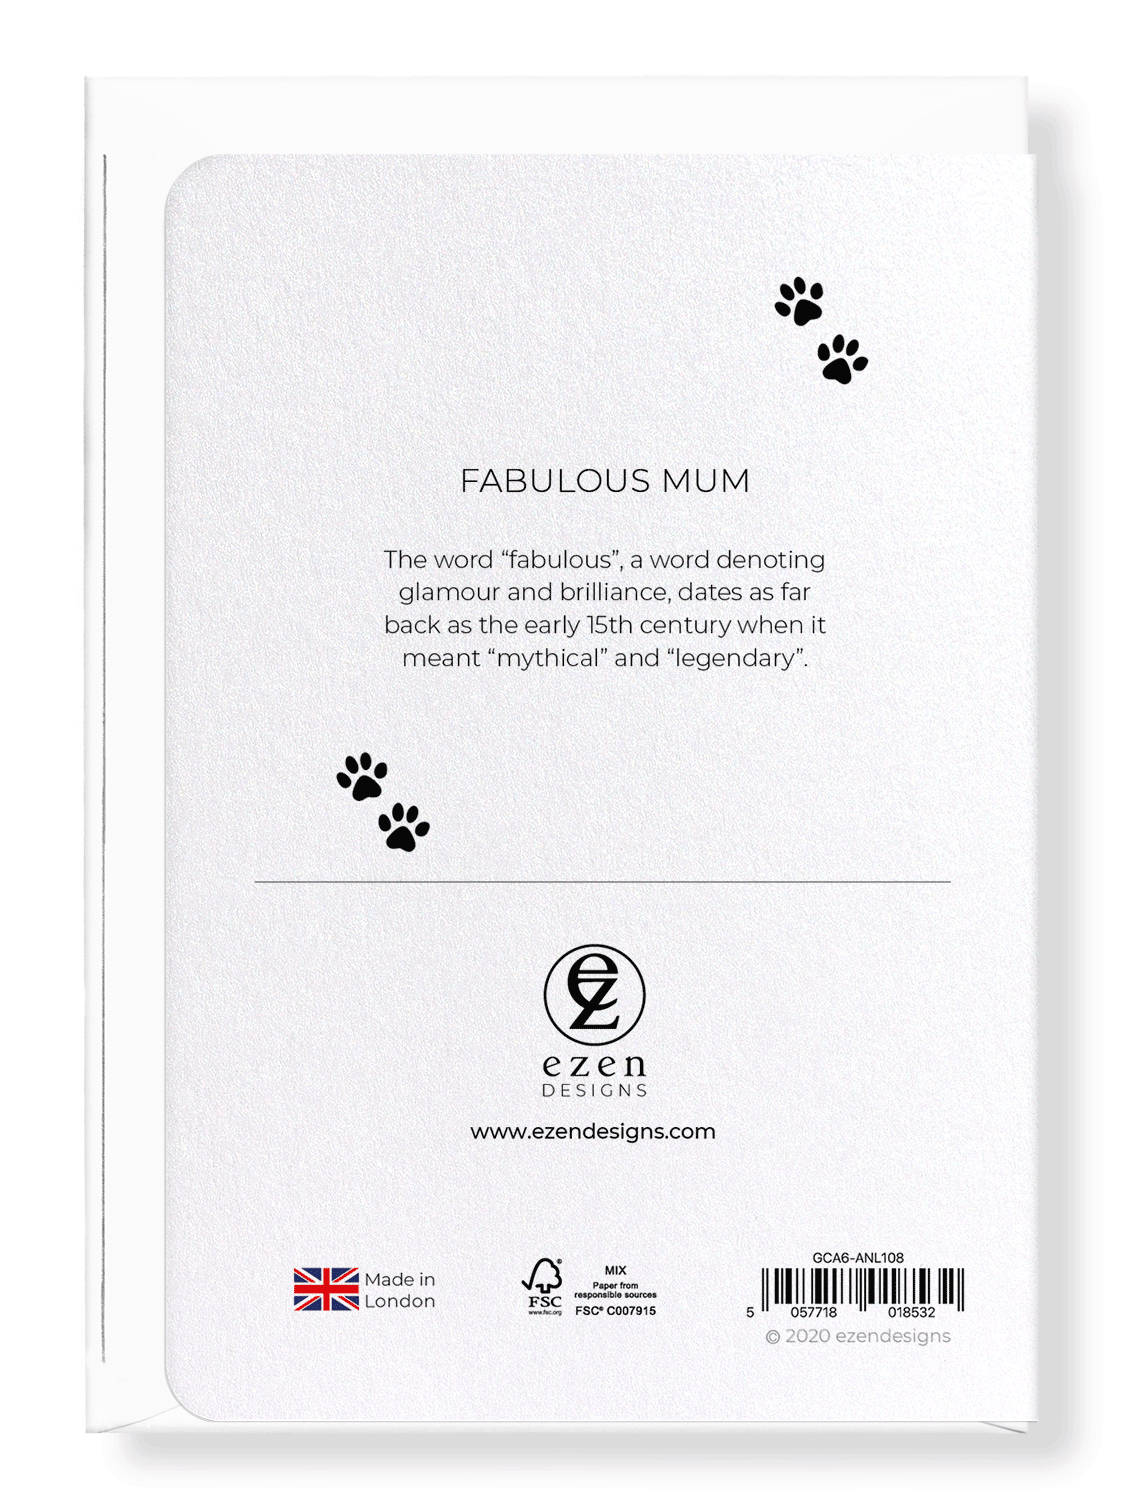 Ezen Designs - Fabulous mum - Greeting Card - Back